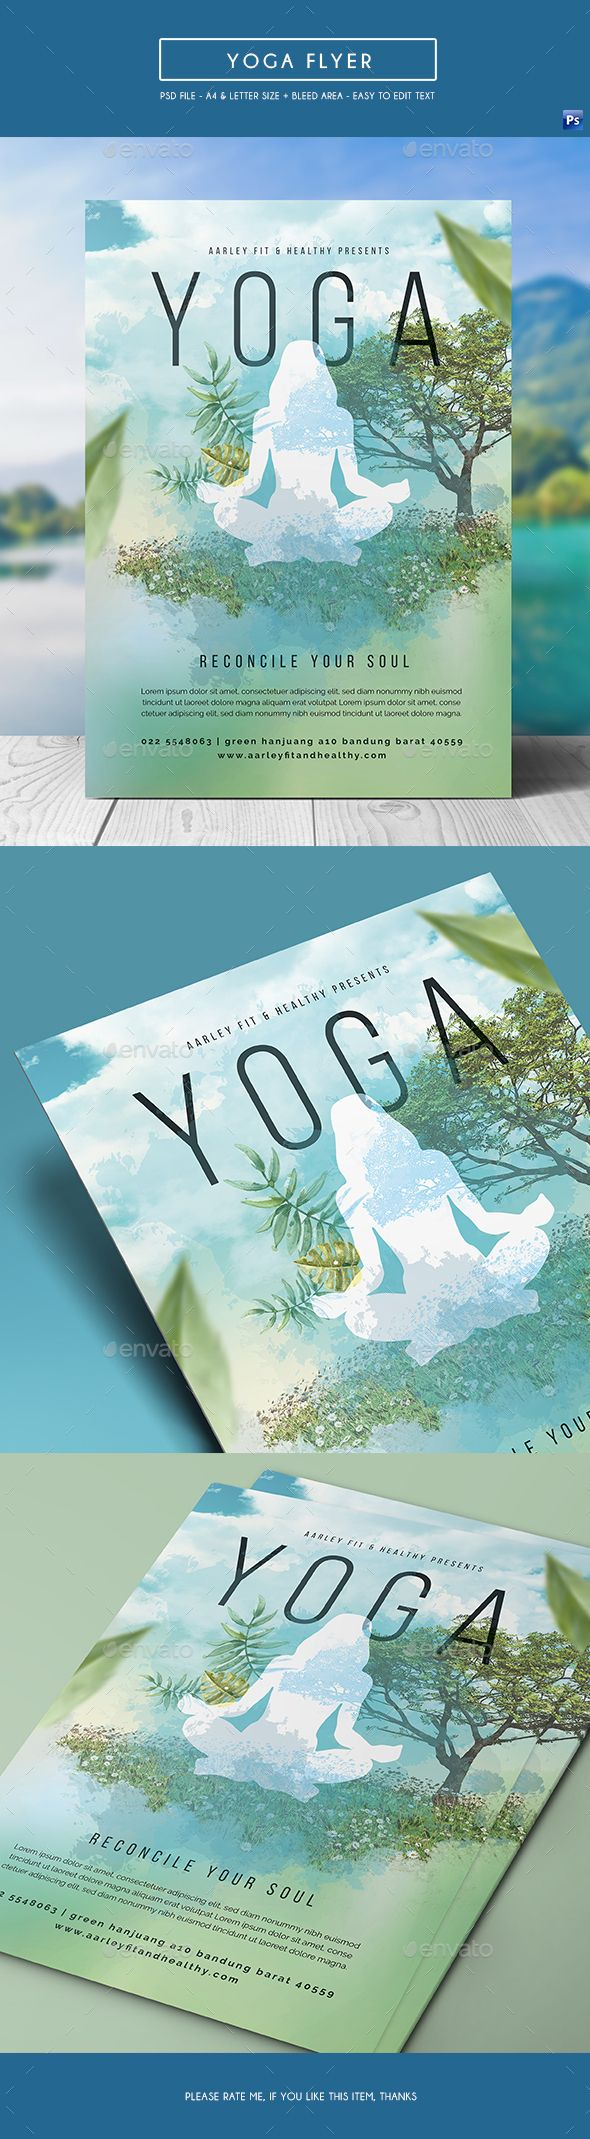 Yoga Flyer PSD Template O Only Available Here Graphicriver